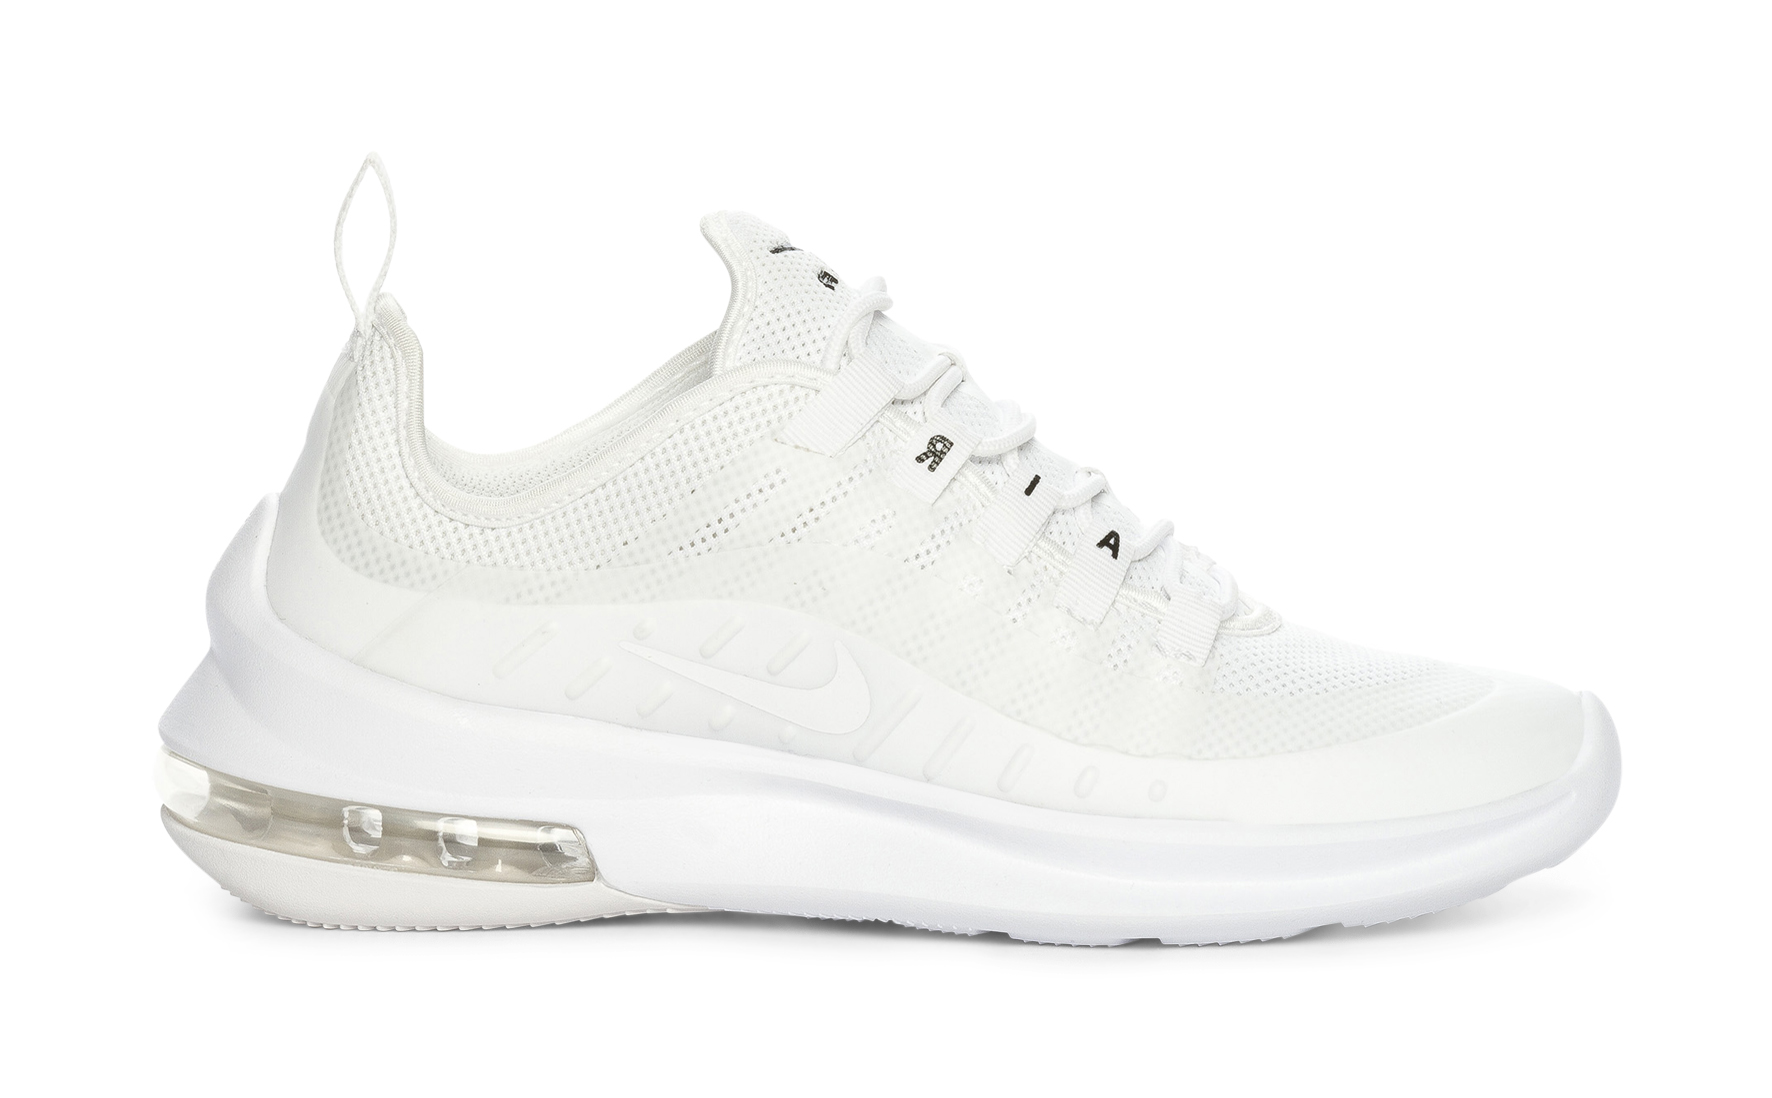 new product b3bbe 8fdbe Nike Air Max Axis - Vita 316710 feetfirst.se